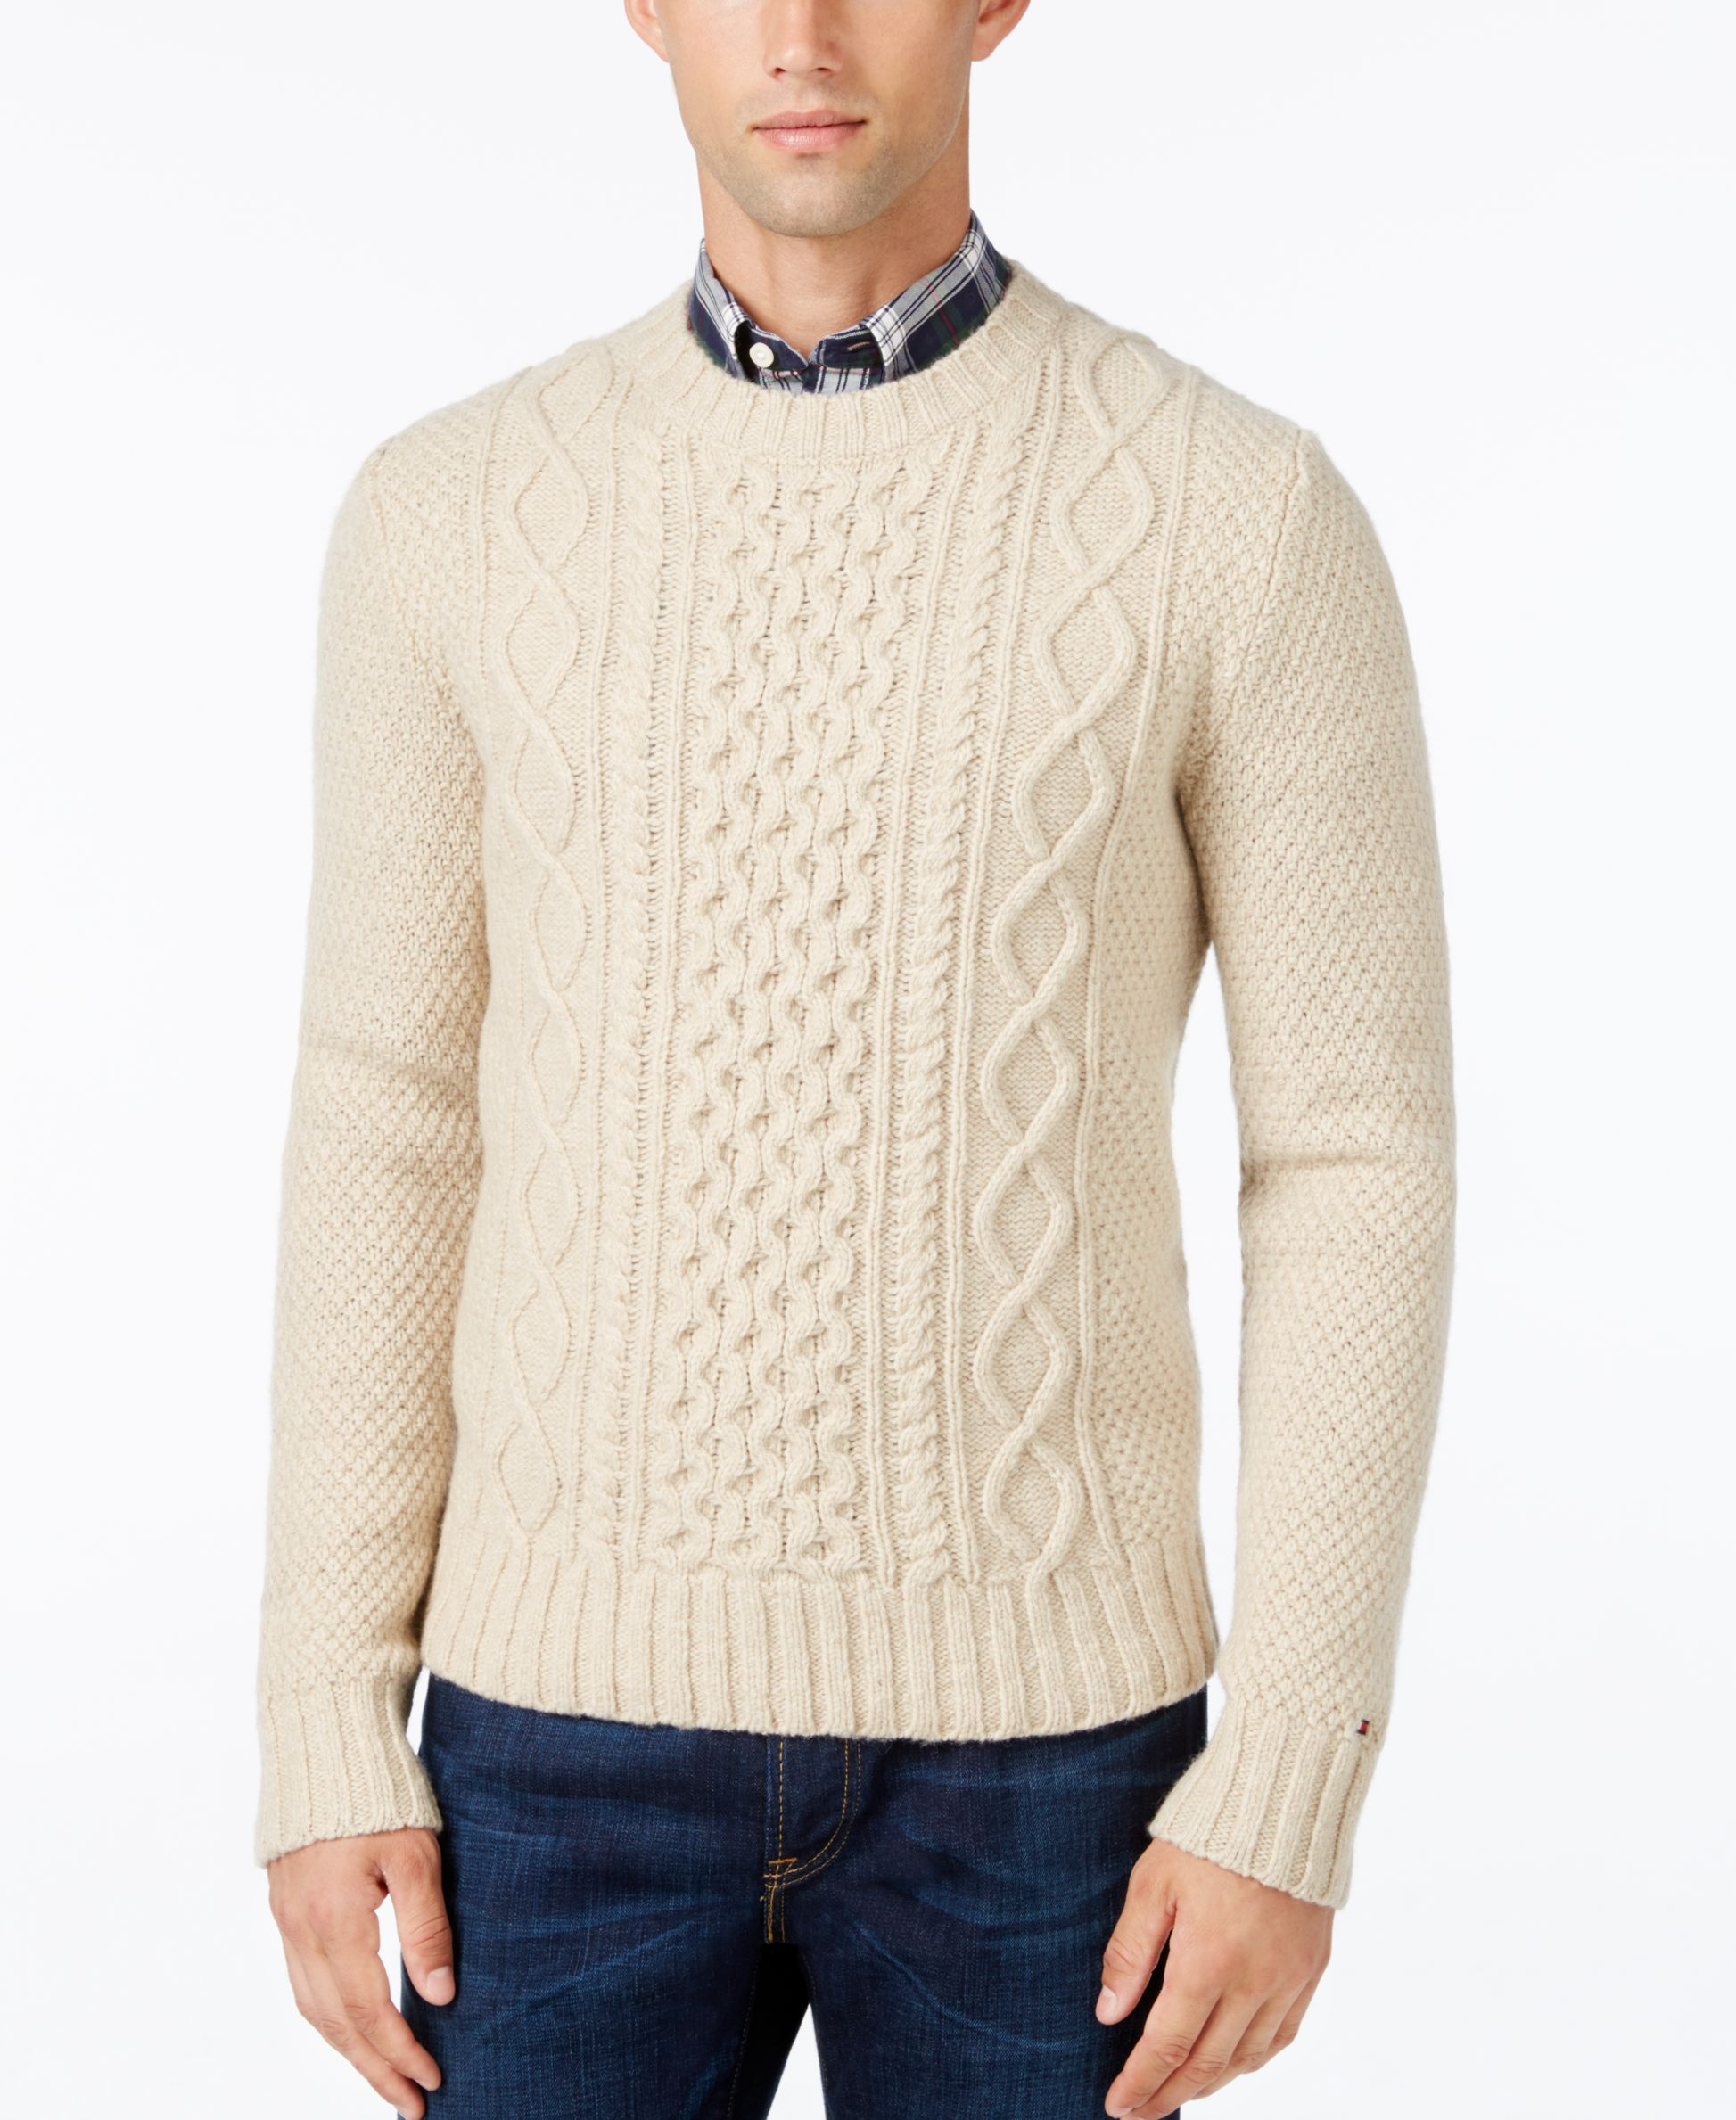 Ideal for layering all season long, this Finn cable-knit sweater ...